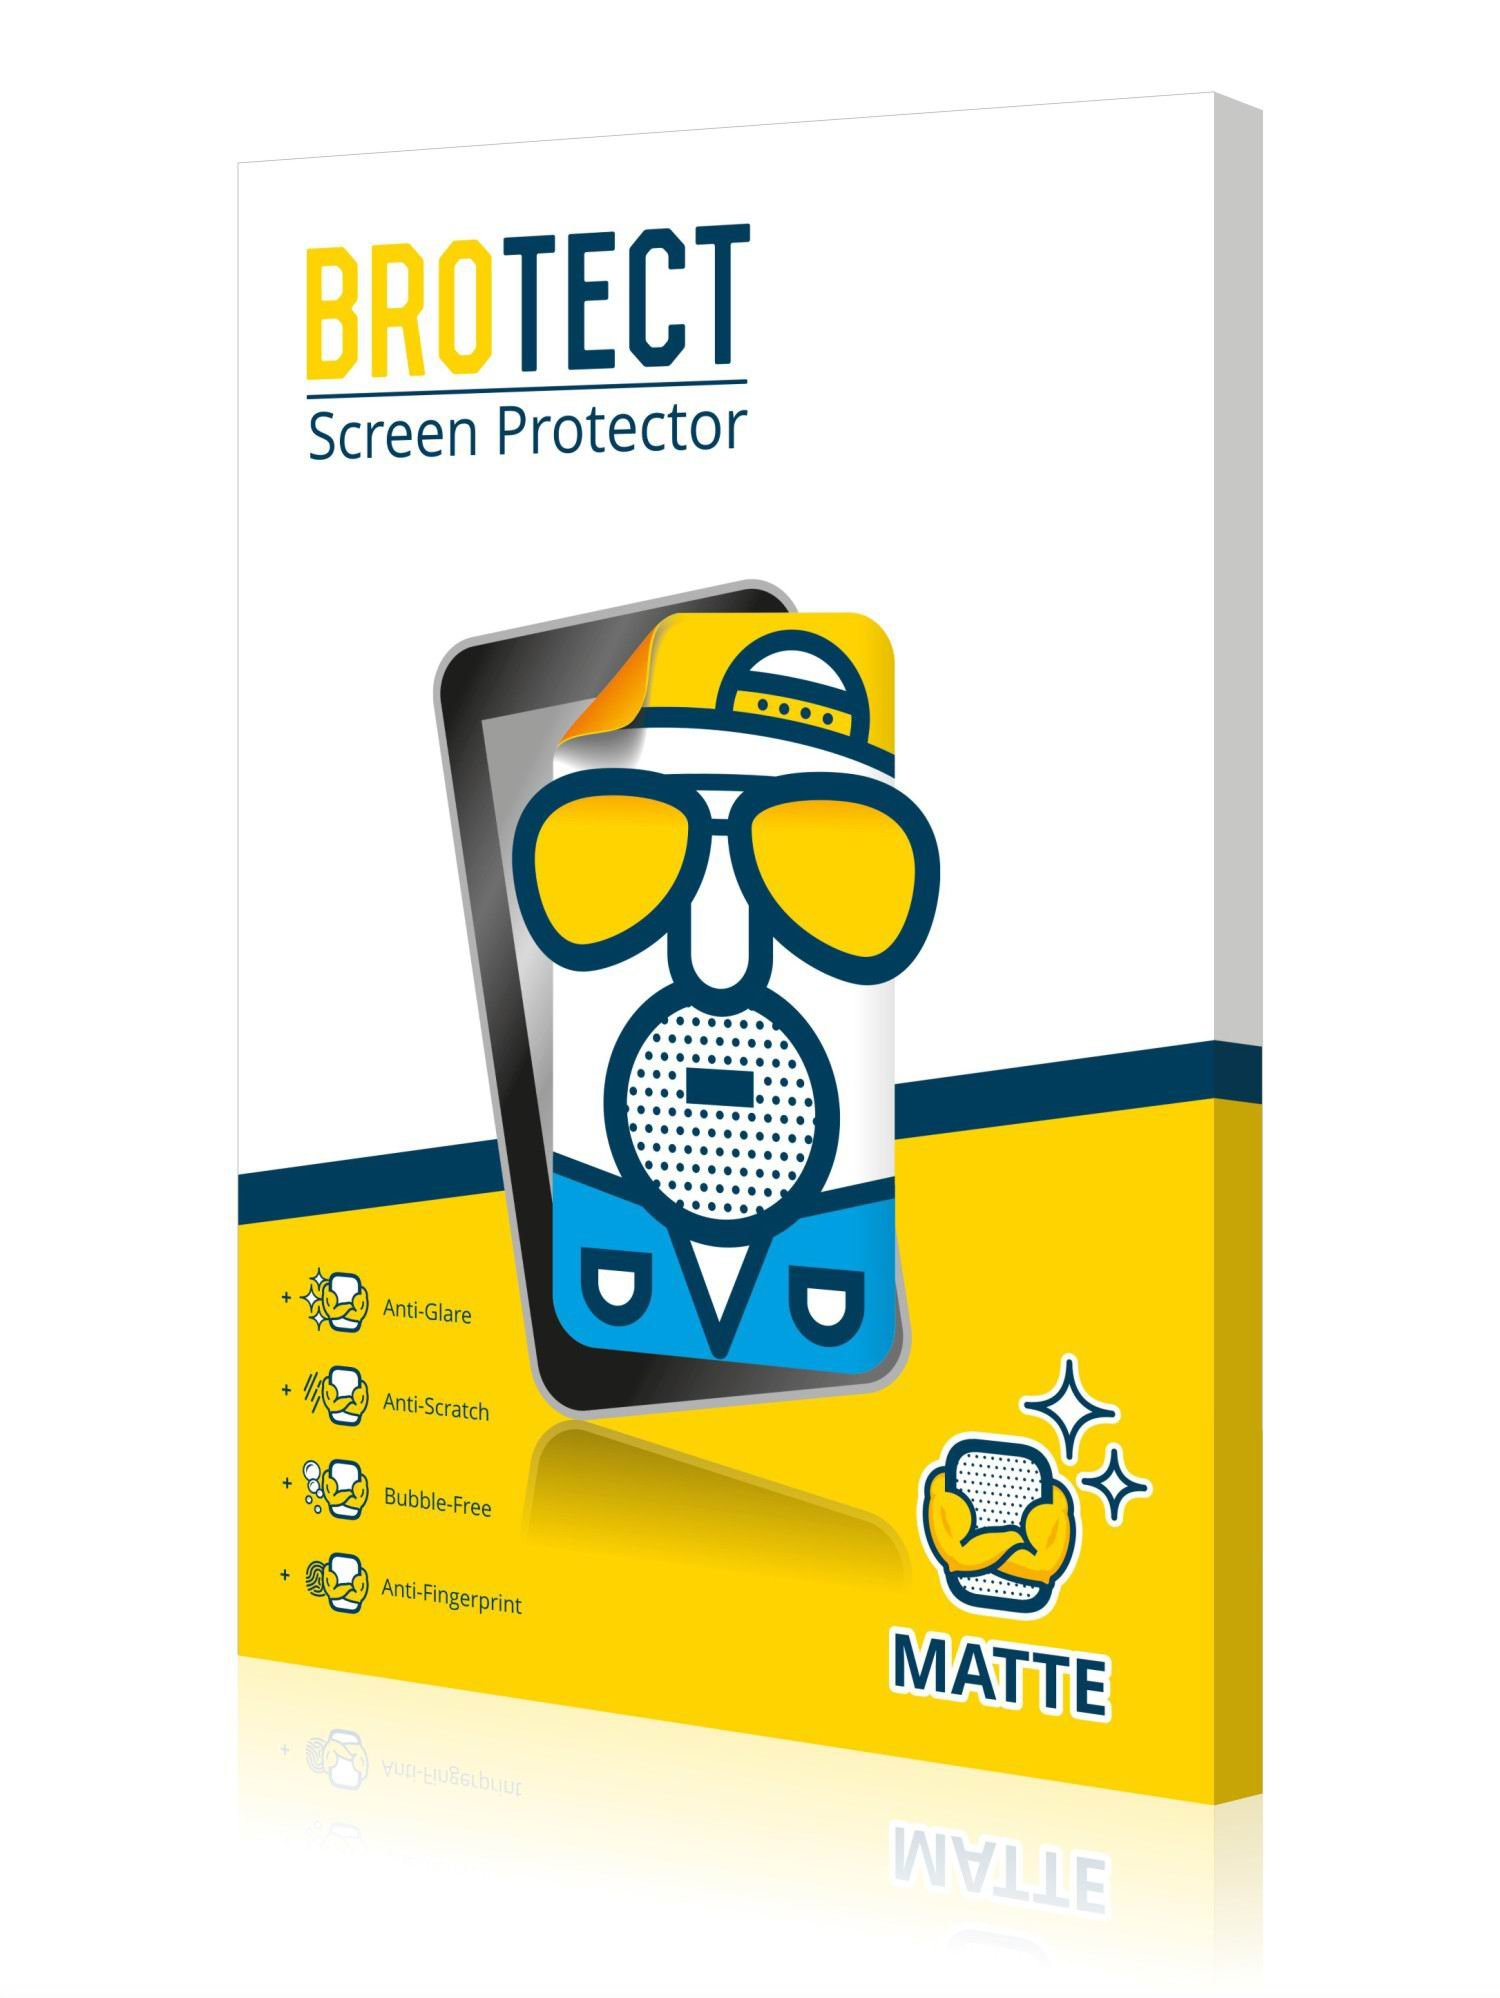 2X BROTECT Matte Screen Protector for Olympus OM-D E-M10 Mark III, Matte, Anti-Glare, Anti-Scratch by Brotect